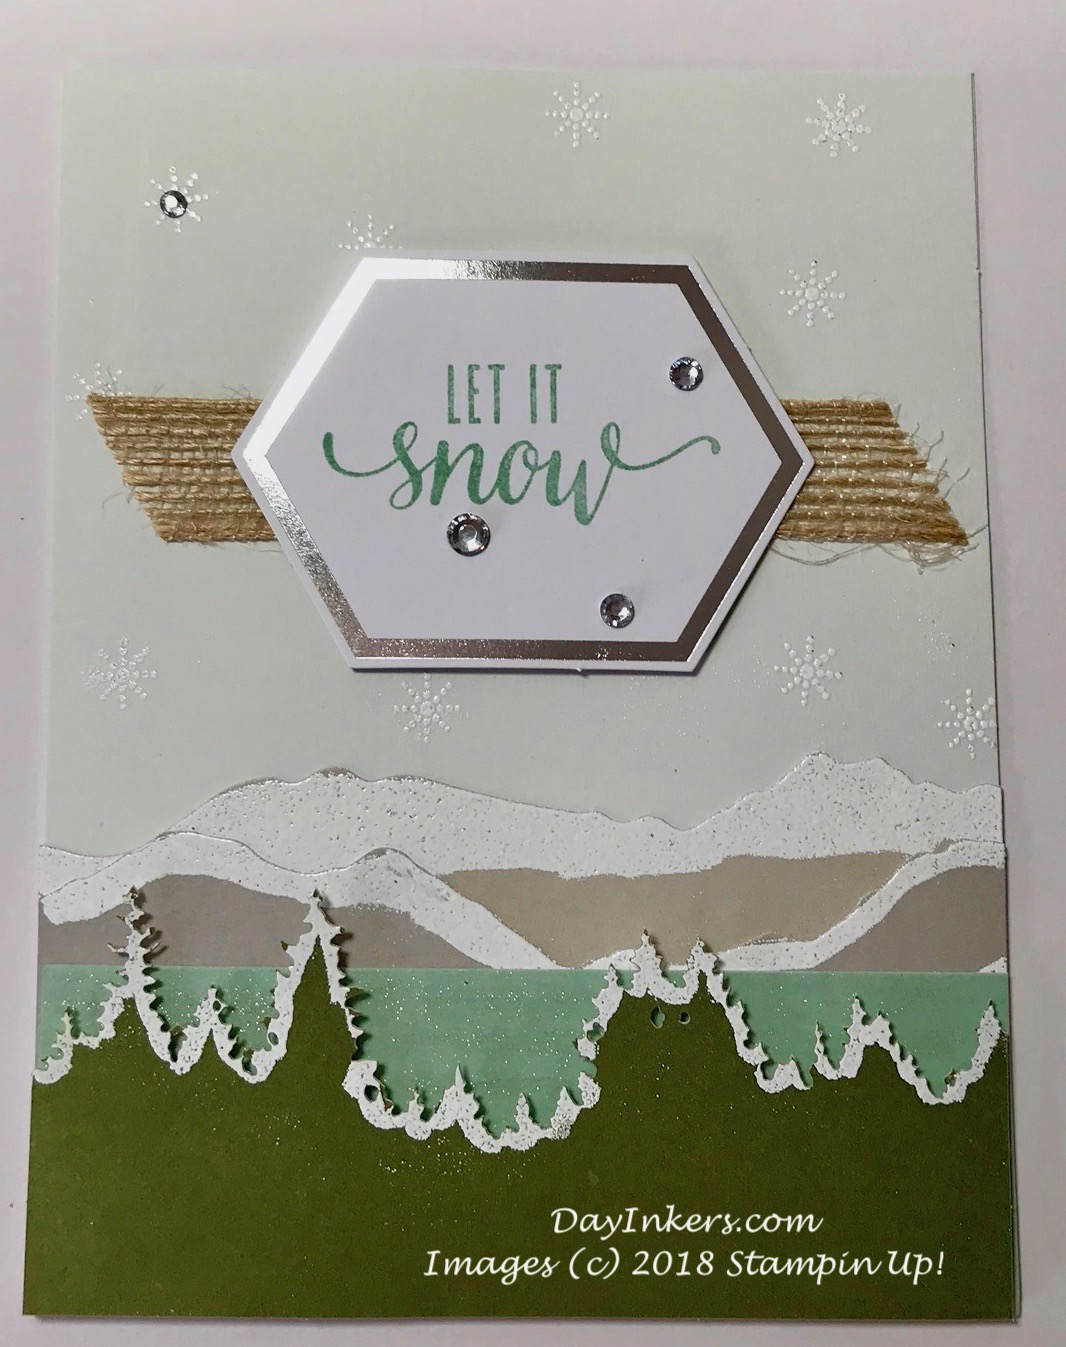 Stampin Up! Paper Pumpkin Manly Moments Alternative Christmas Card